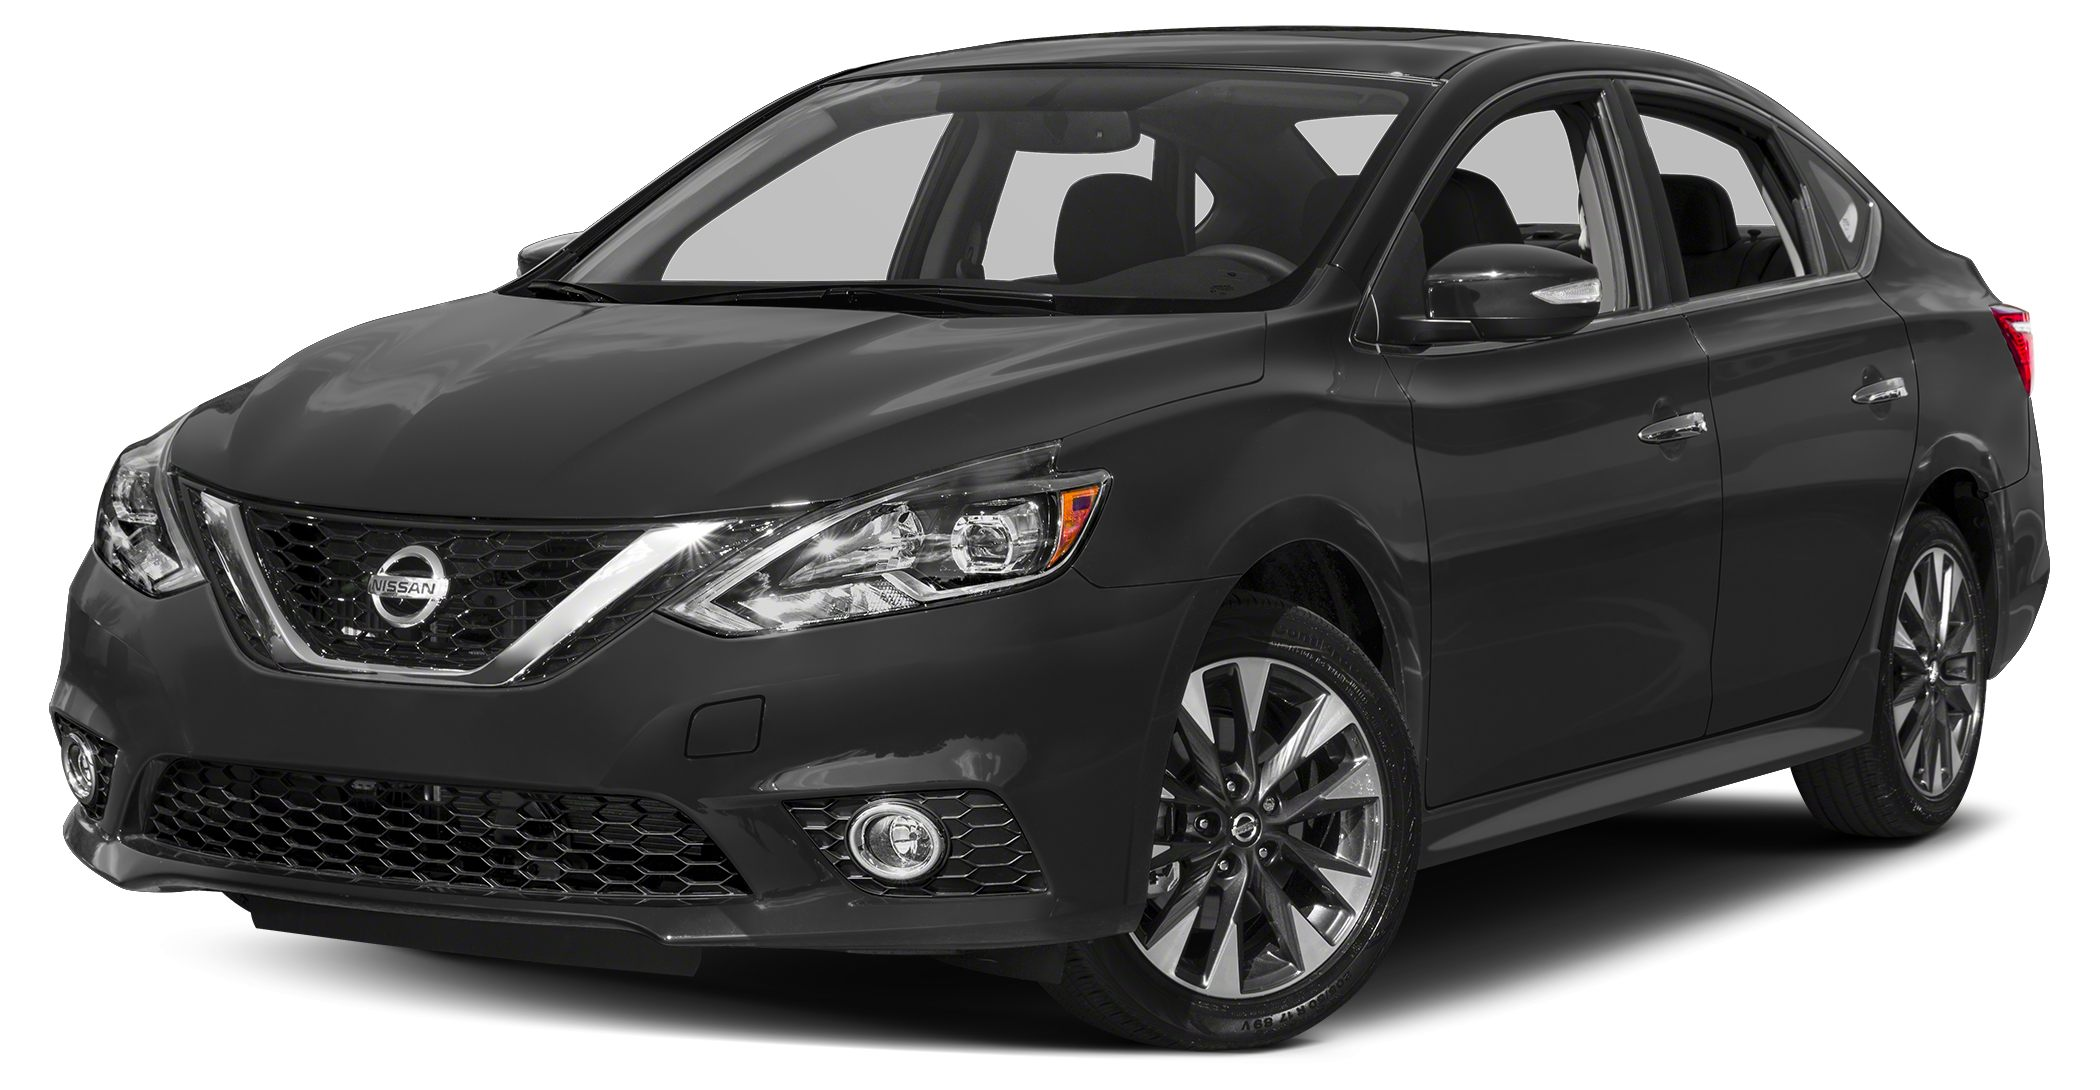 2017 Nissan Sentra SR Turbo This 2017 Nissan Sentra 4dr SR Turbo CVT features a 16L 4 Cylinder 4c